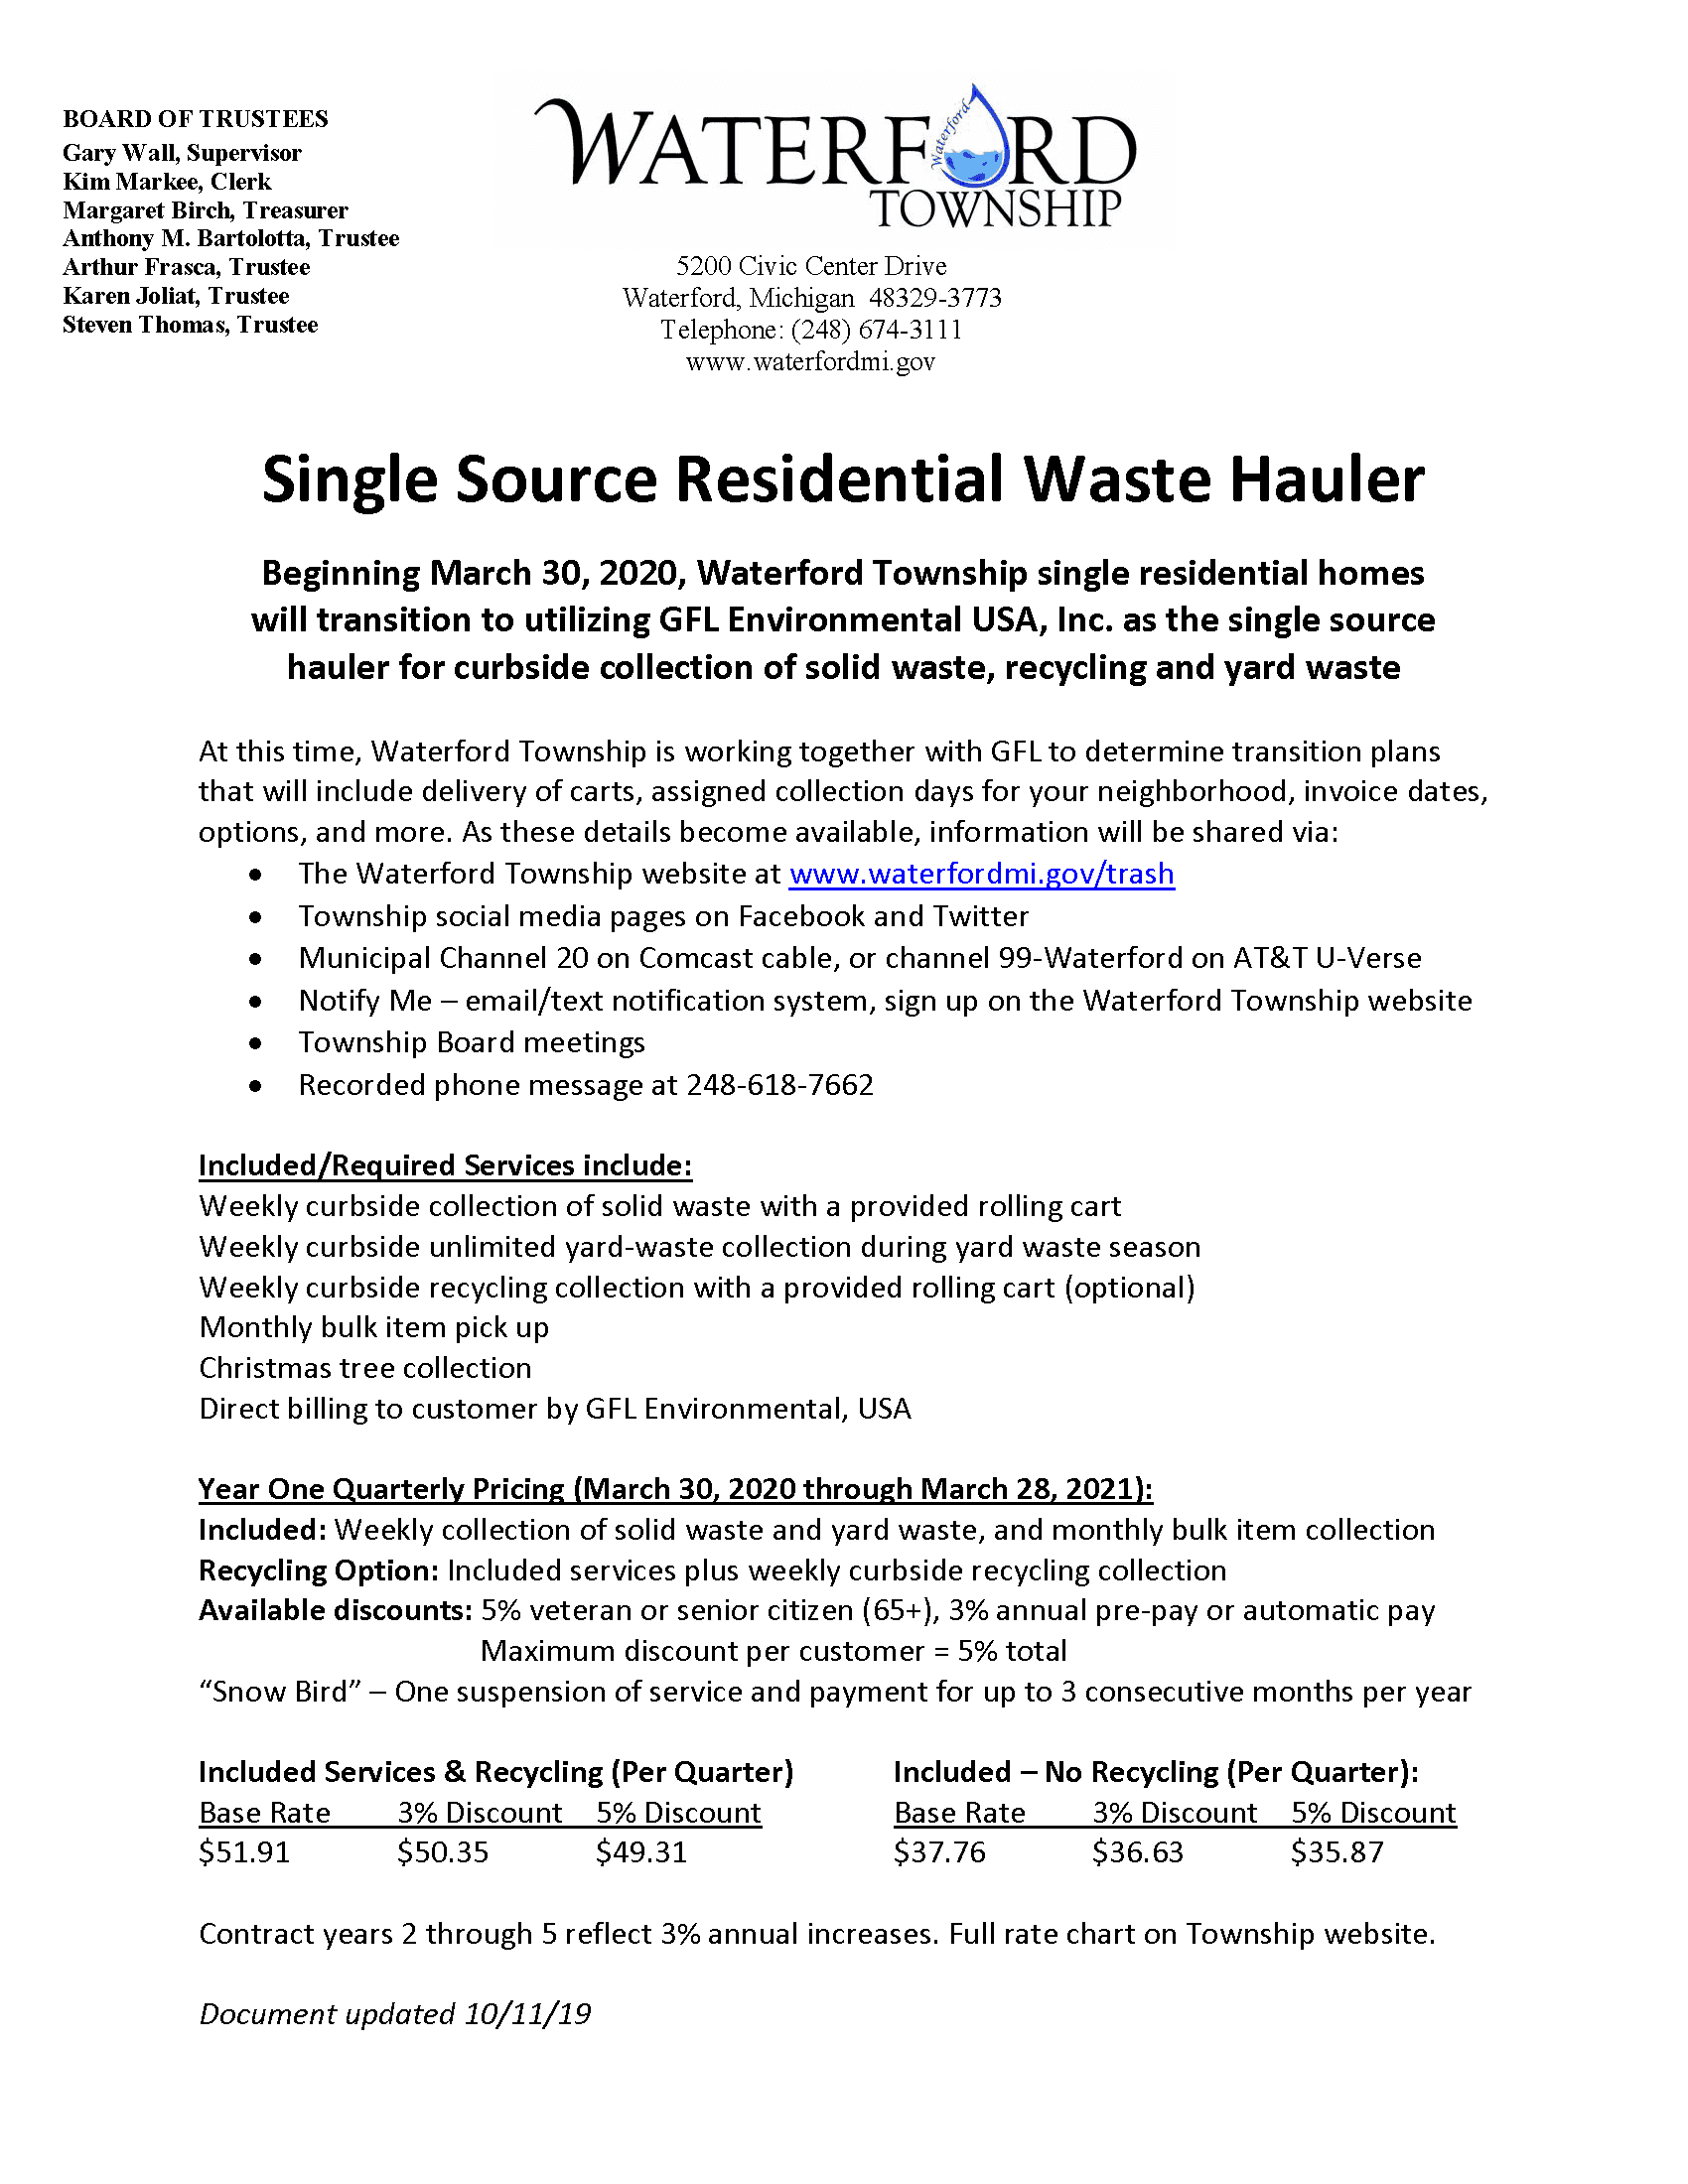 Single Source Waste Hauler 101119_Page_1